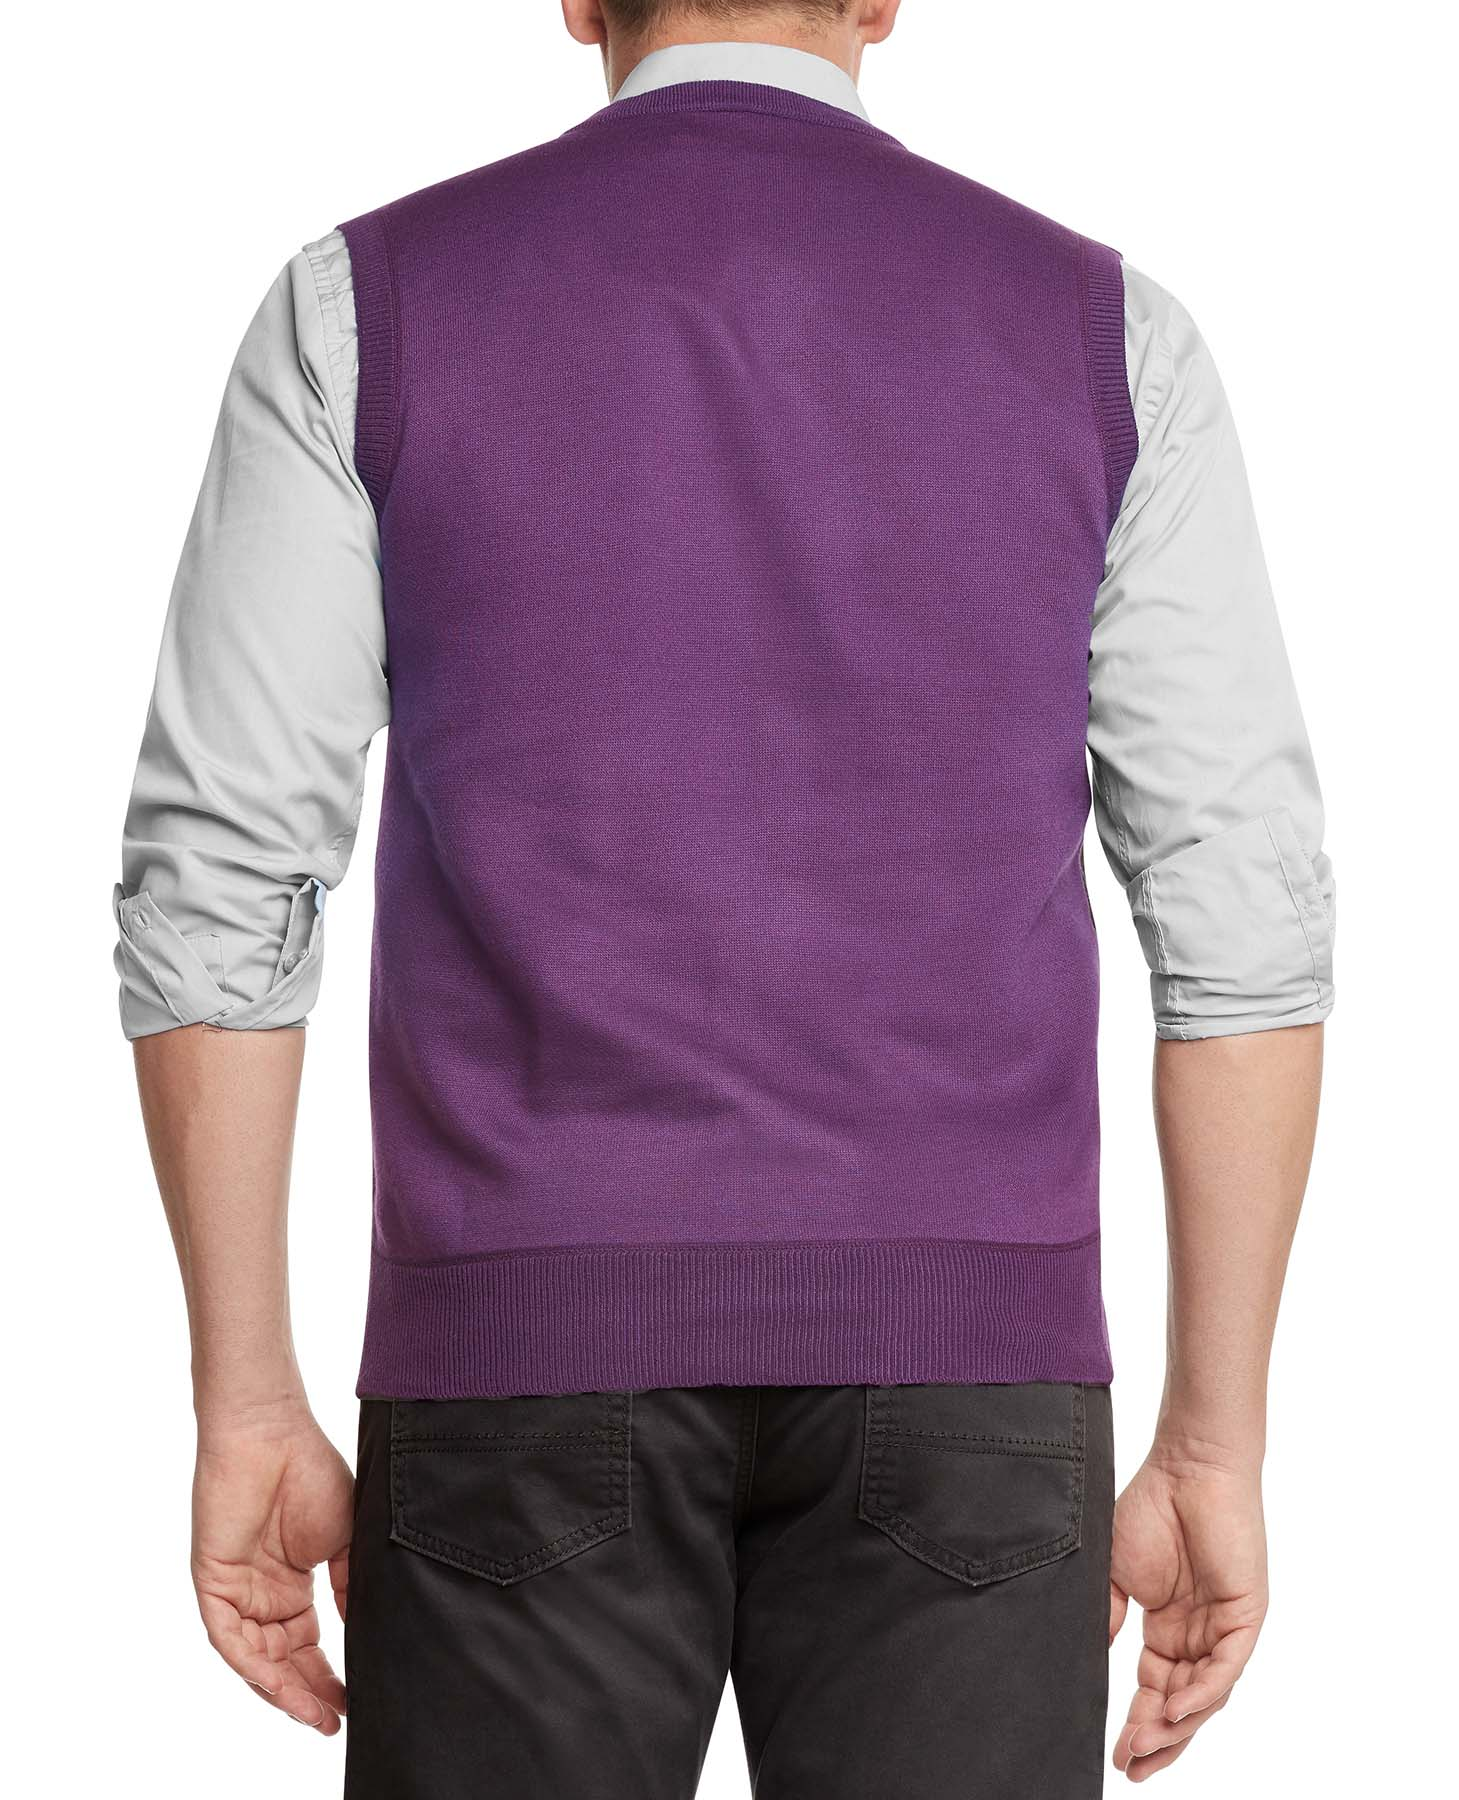 True Rock Men's Argyle V-neck Sweater Vest 2xl Purple/blk/gray | eBay